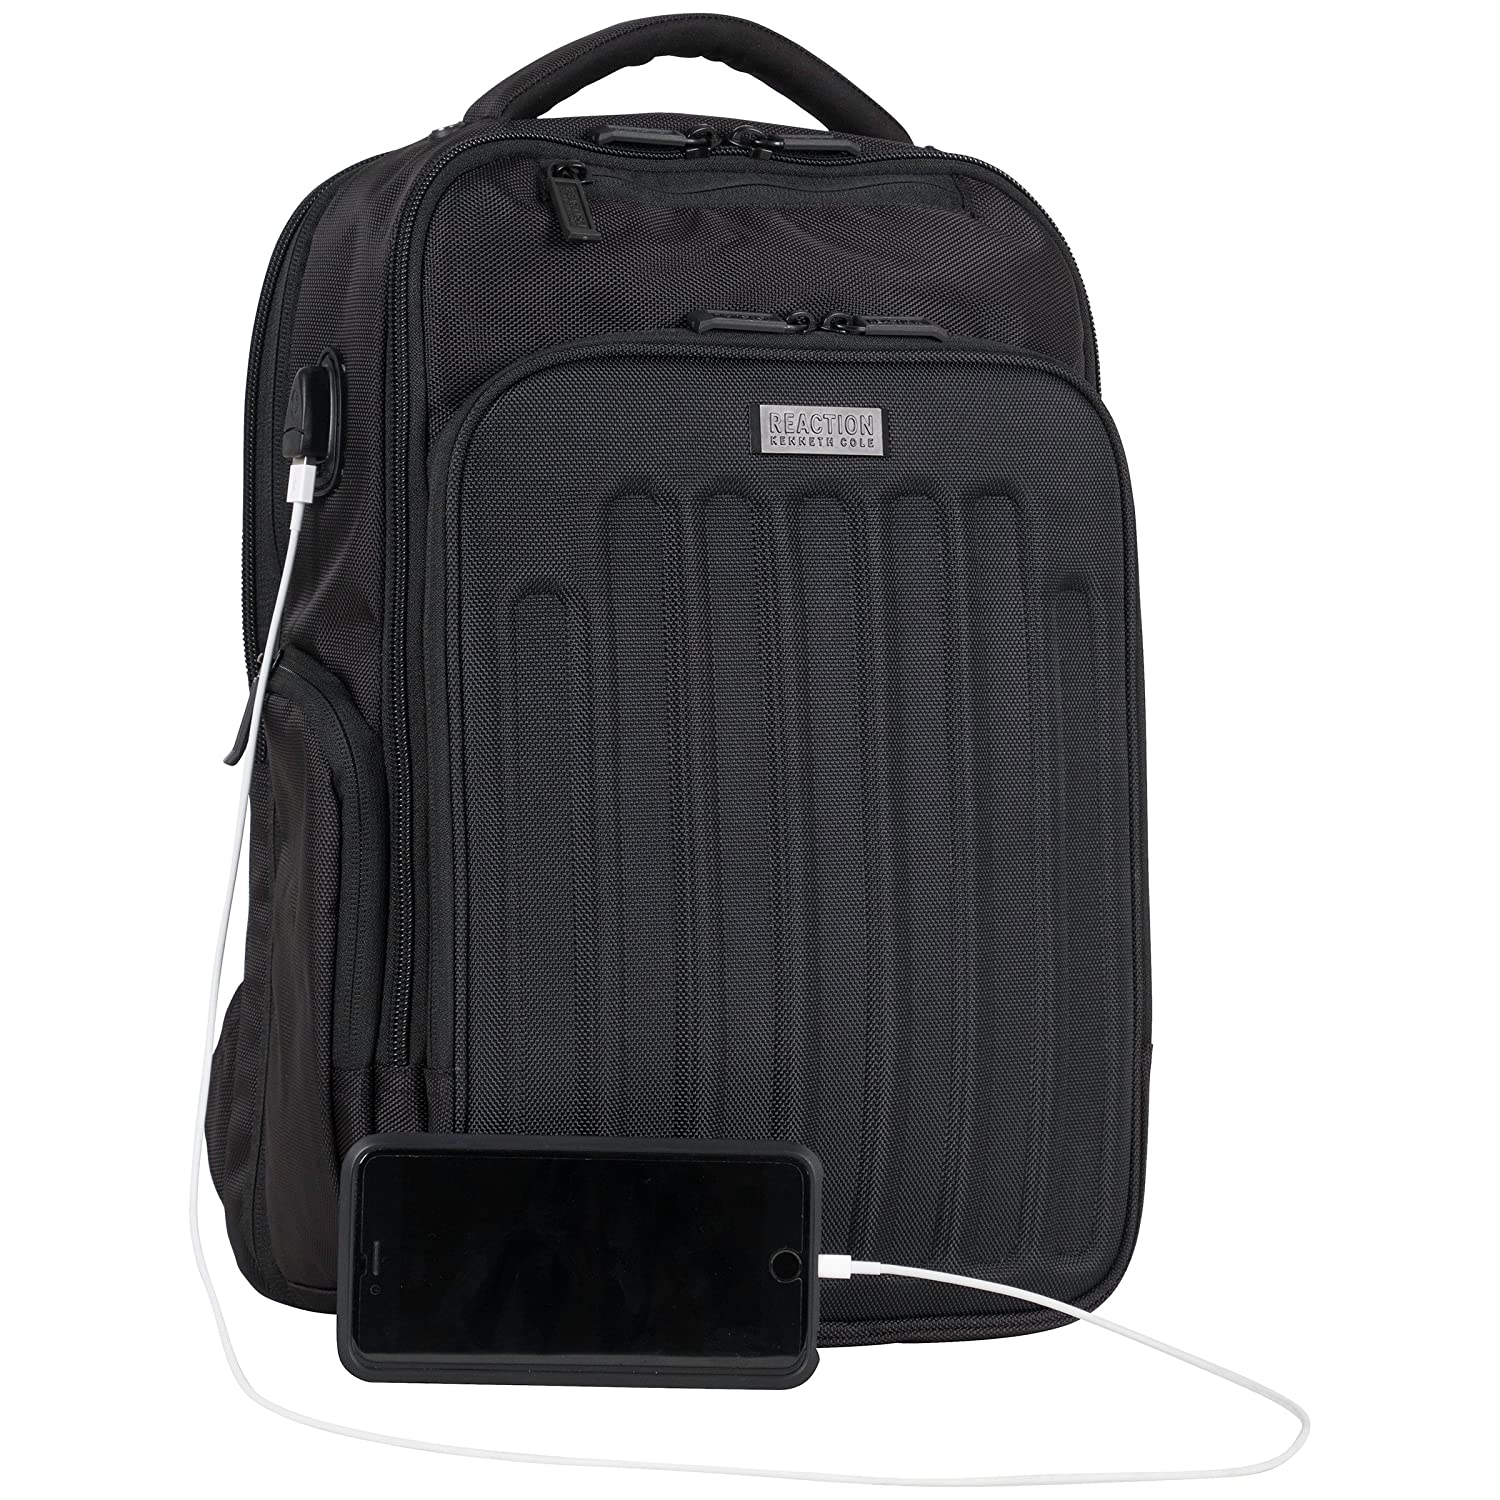 9824c126f054 Amazon.com  Kenneth Cole Reaction 1680d Polyester Dual Compartment 15.6